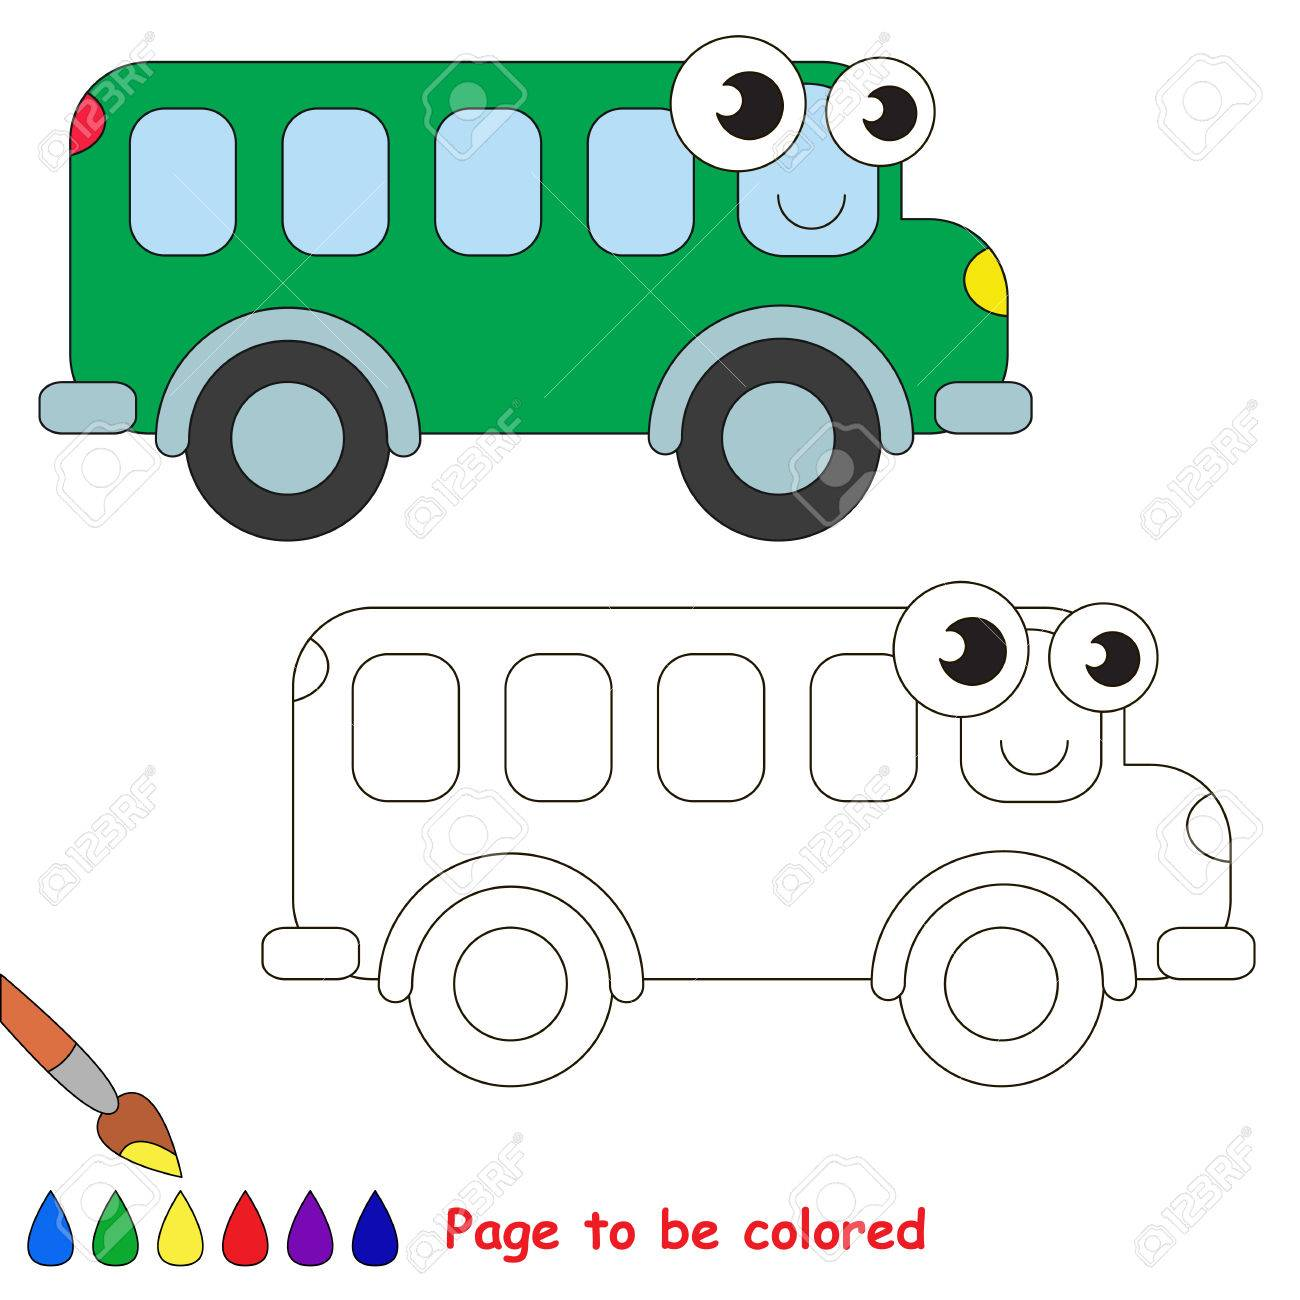 Green Bus To Be Colored. Coloring Book To Educate Kids. Learn ...